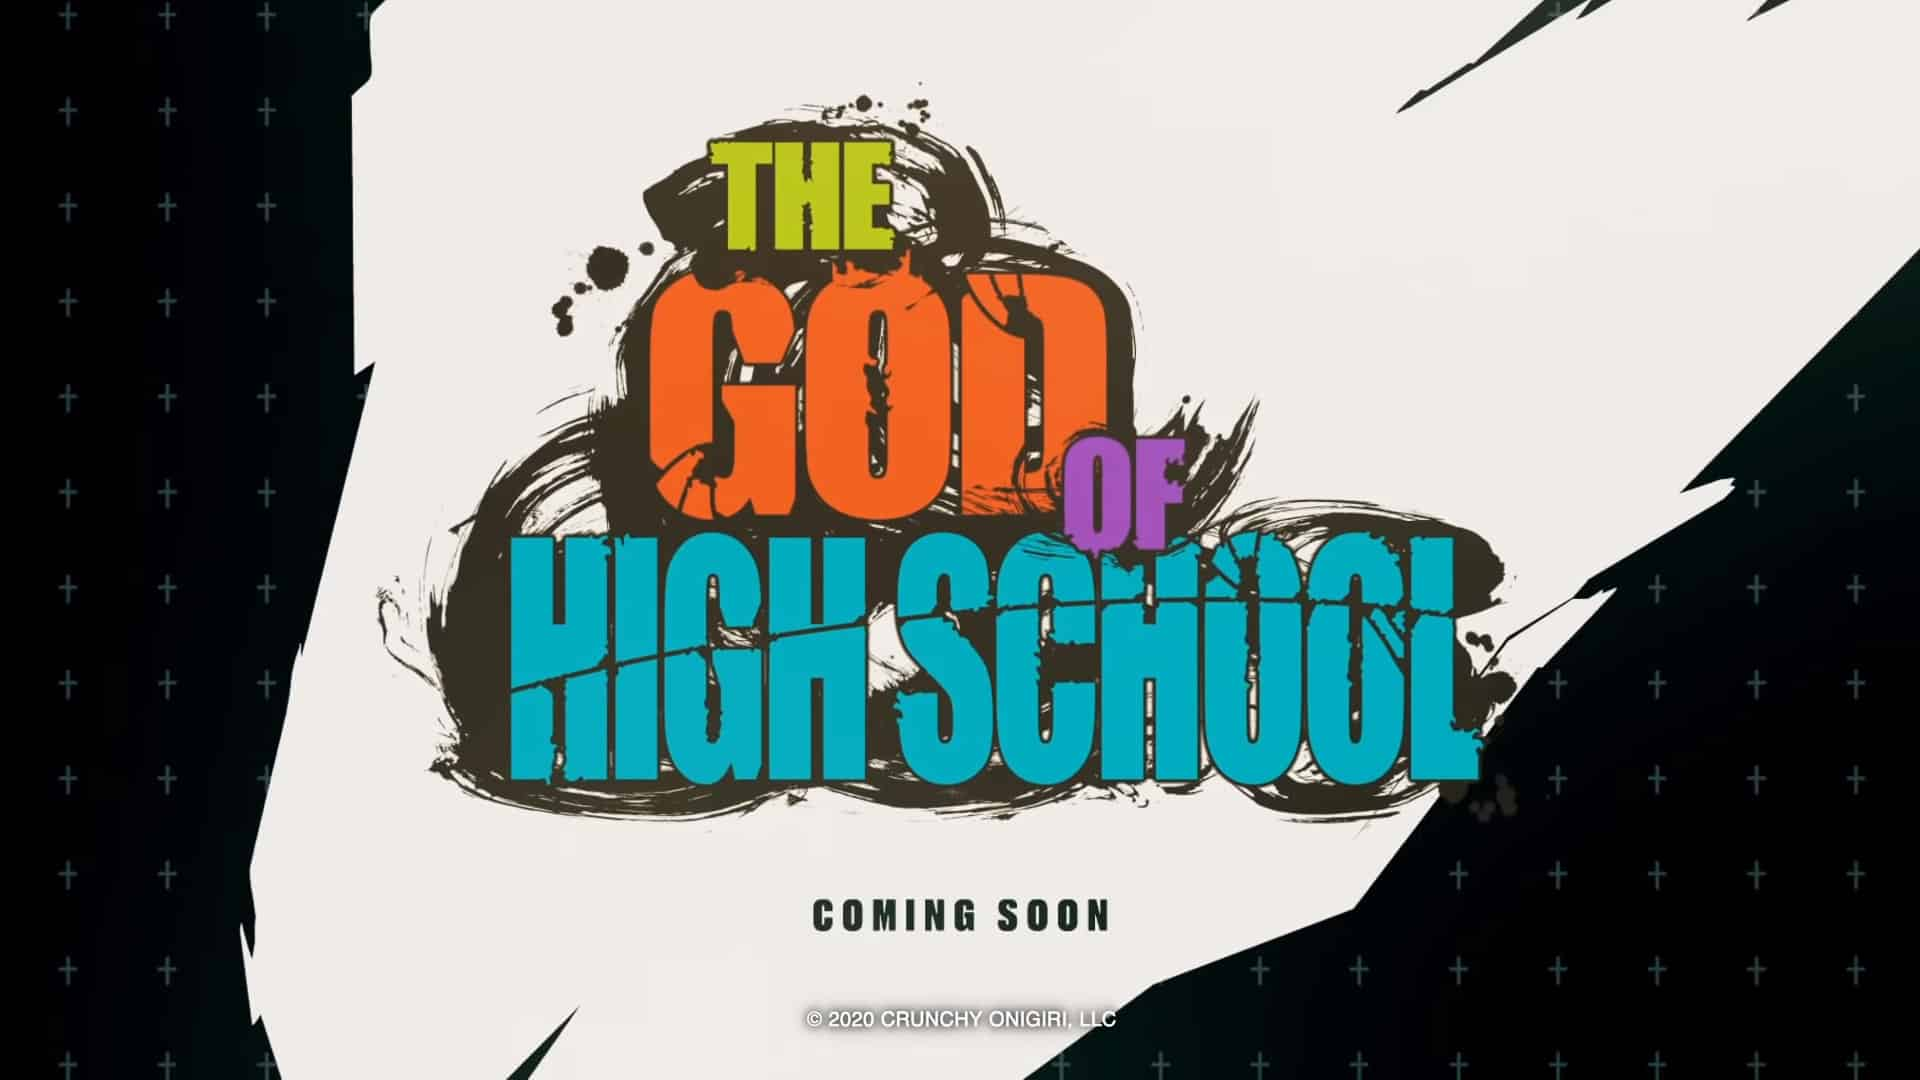 Annonce en trailer vidéo de l'anime The God of High School